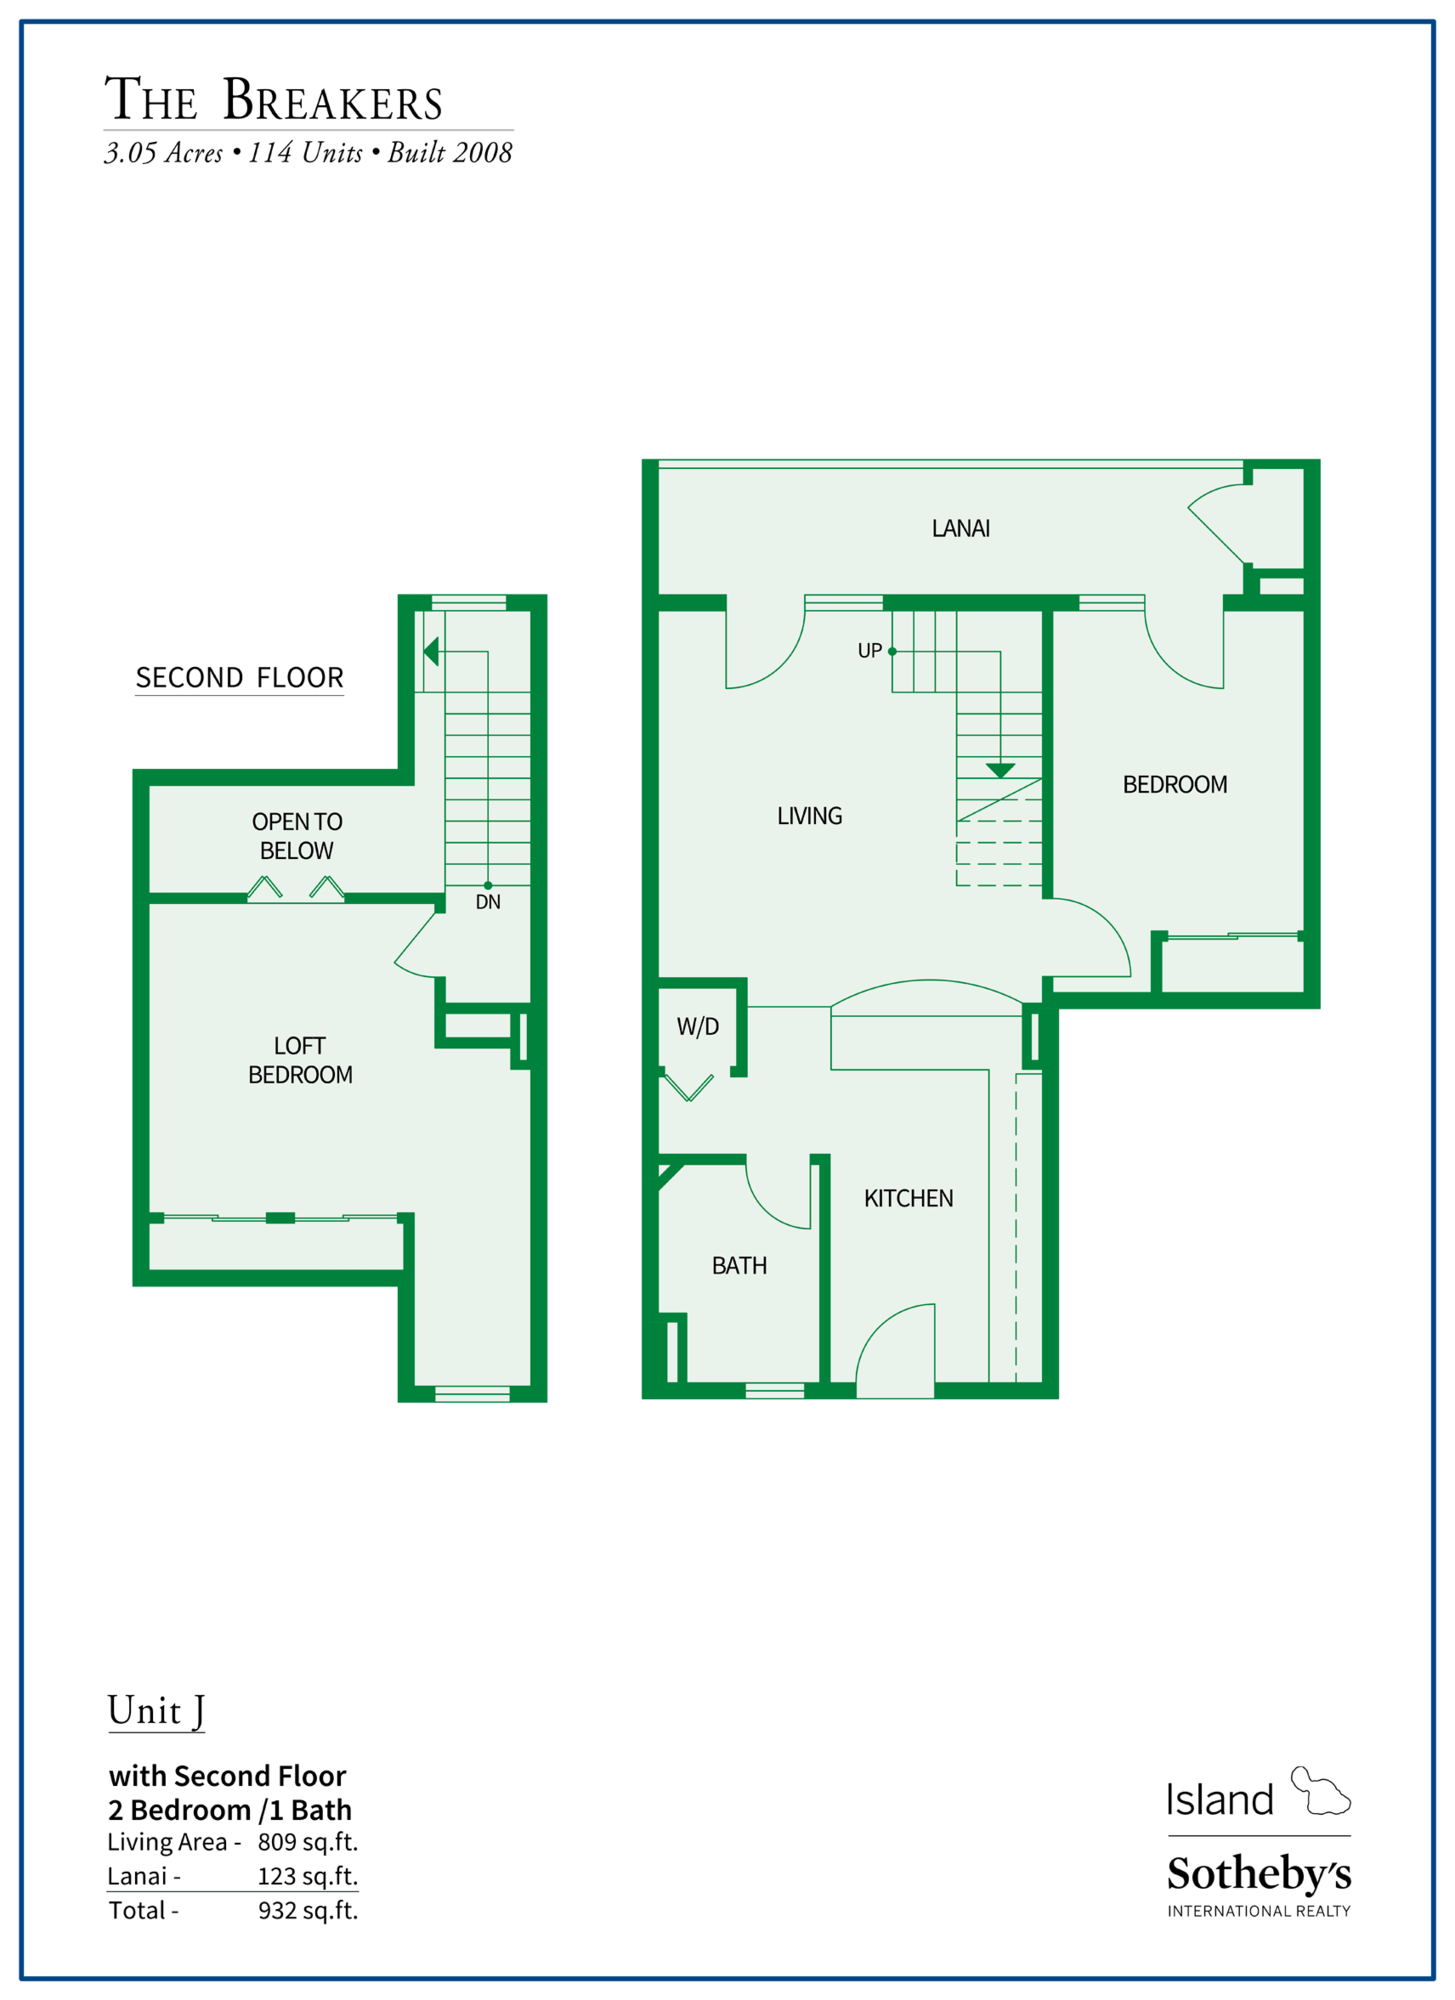 The Breakers Maui Floor Plan J